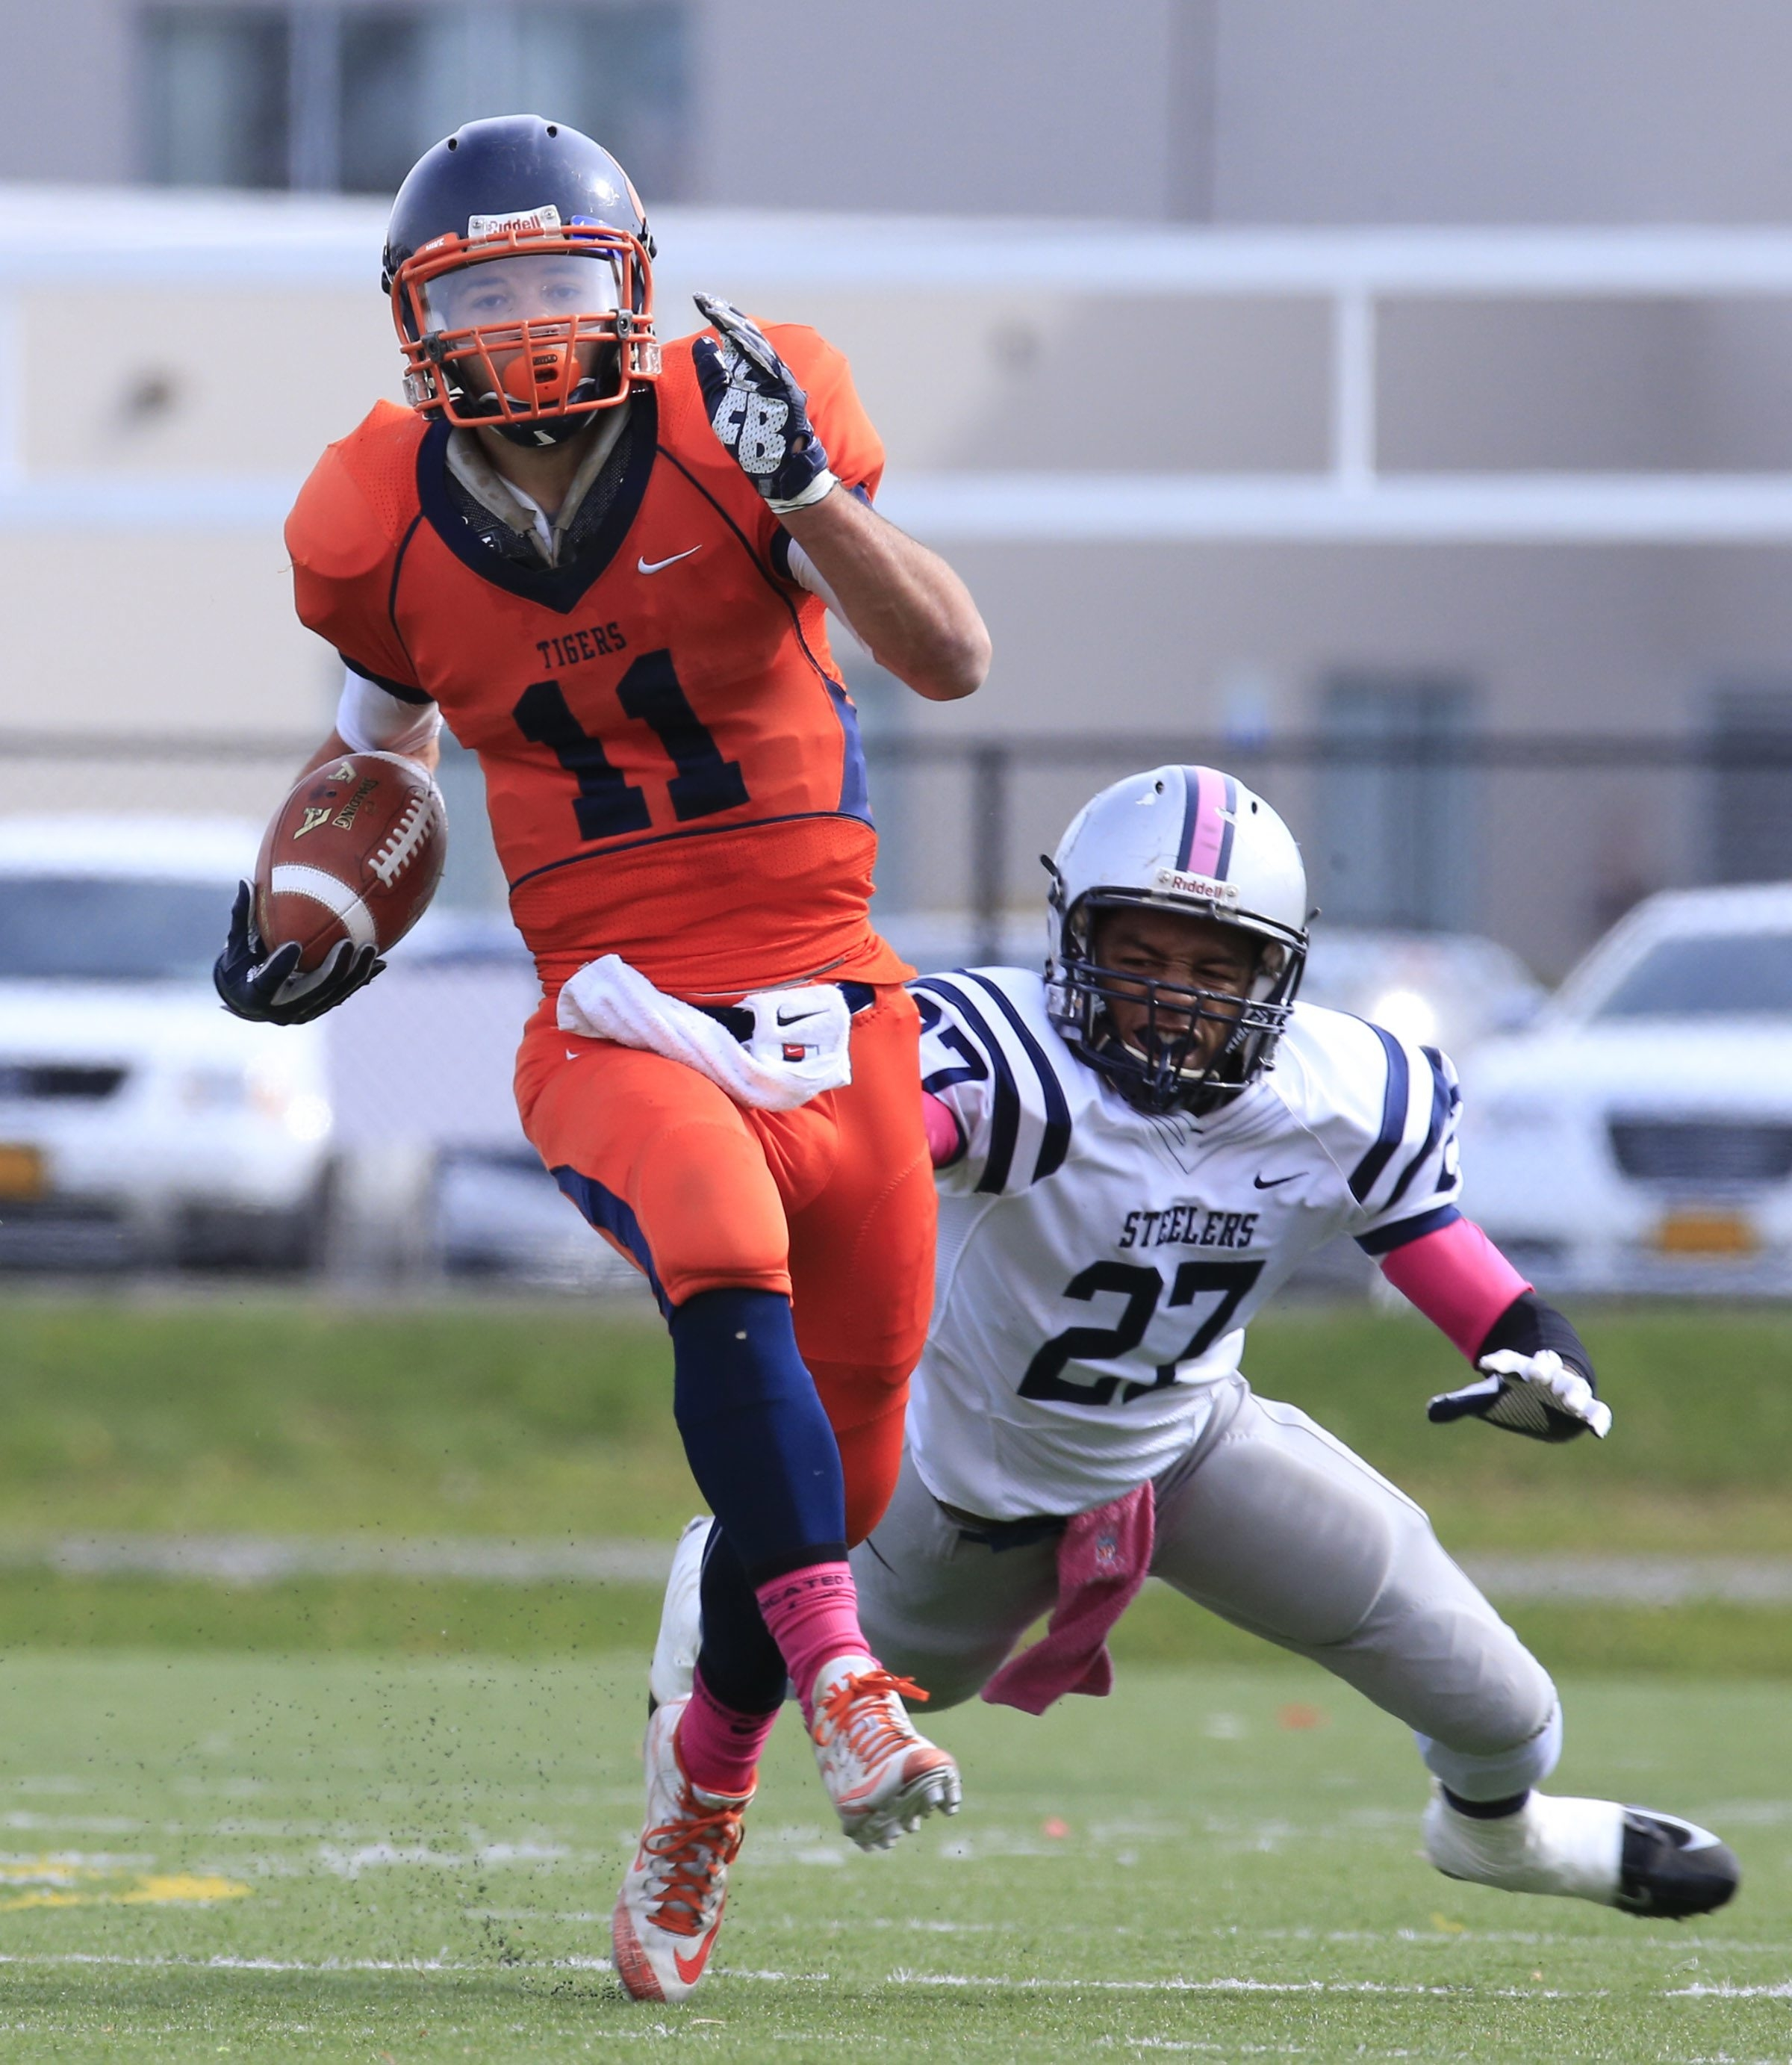 Bennett'a Isaiah McDuffie runs for a touchdown against Lackawanna   at All-High Stadium  on Saturday, Oct. 31, 2015.  (Harry Scull Jr./Buffalo News)